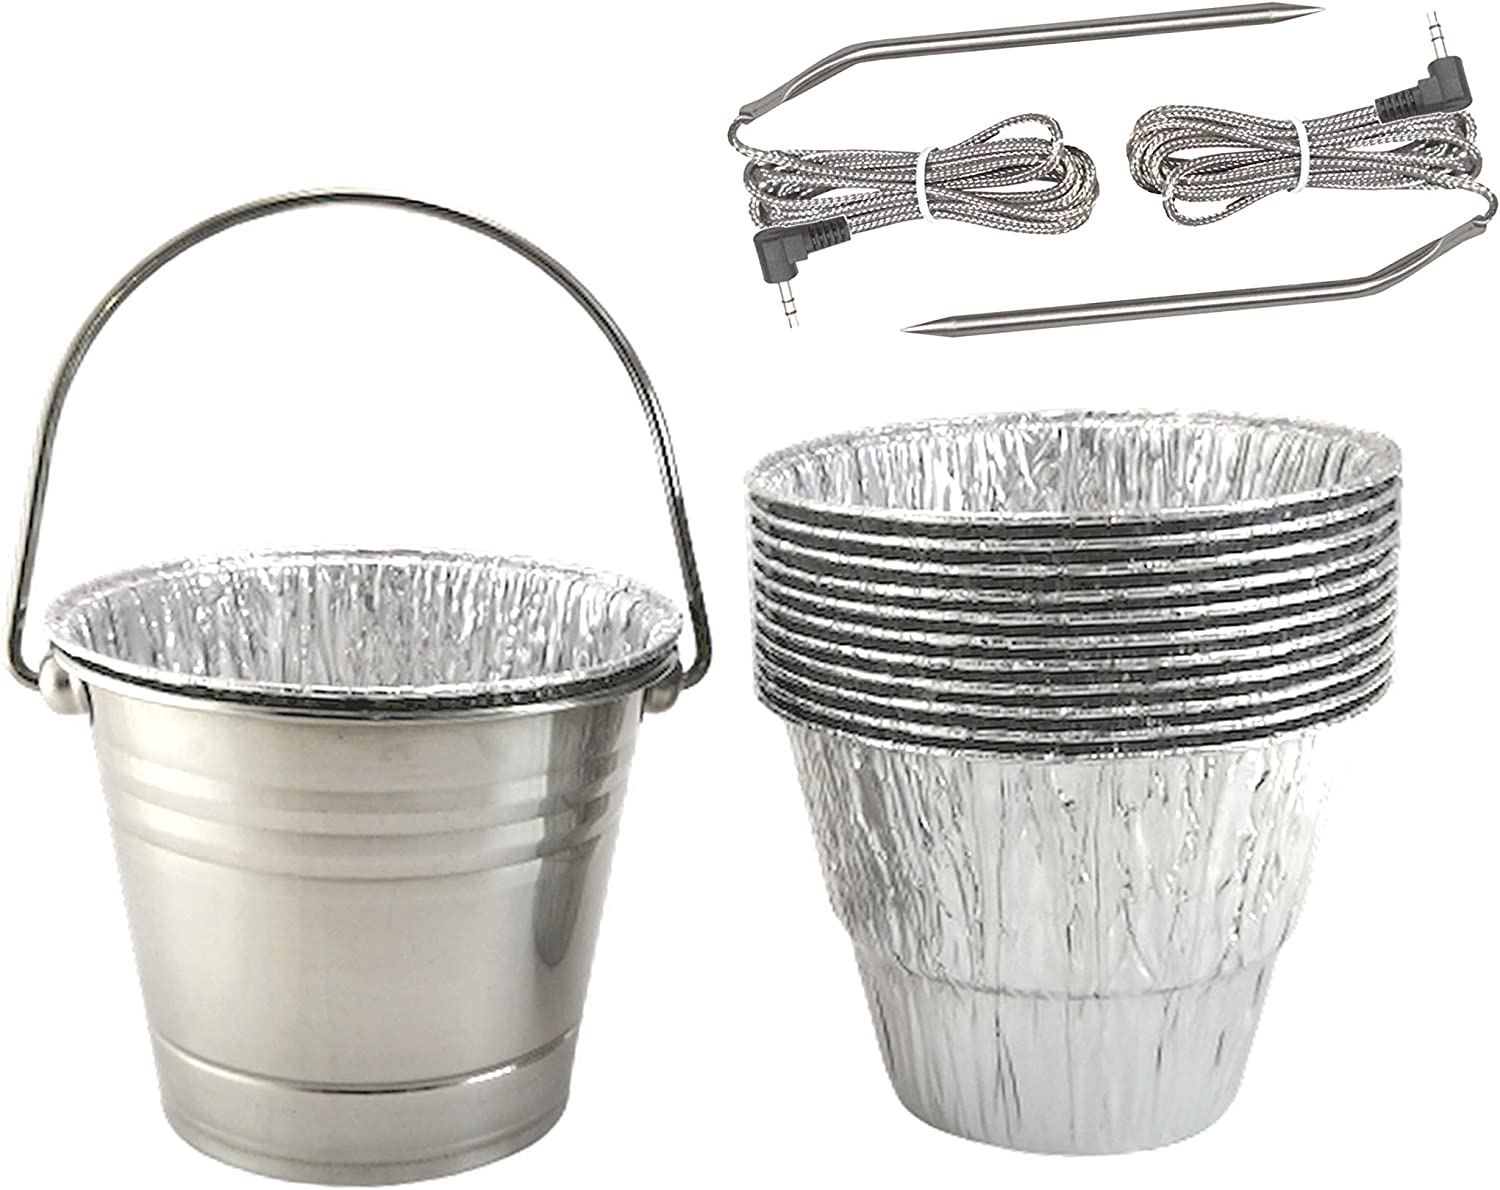 BIG PART Replacement Disposable Grease Bucket Liner,Stainless Steel Drip Bucket,Meat Probes Fit for Camp Chef Wood Pellet Grill & Smoker